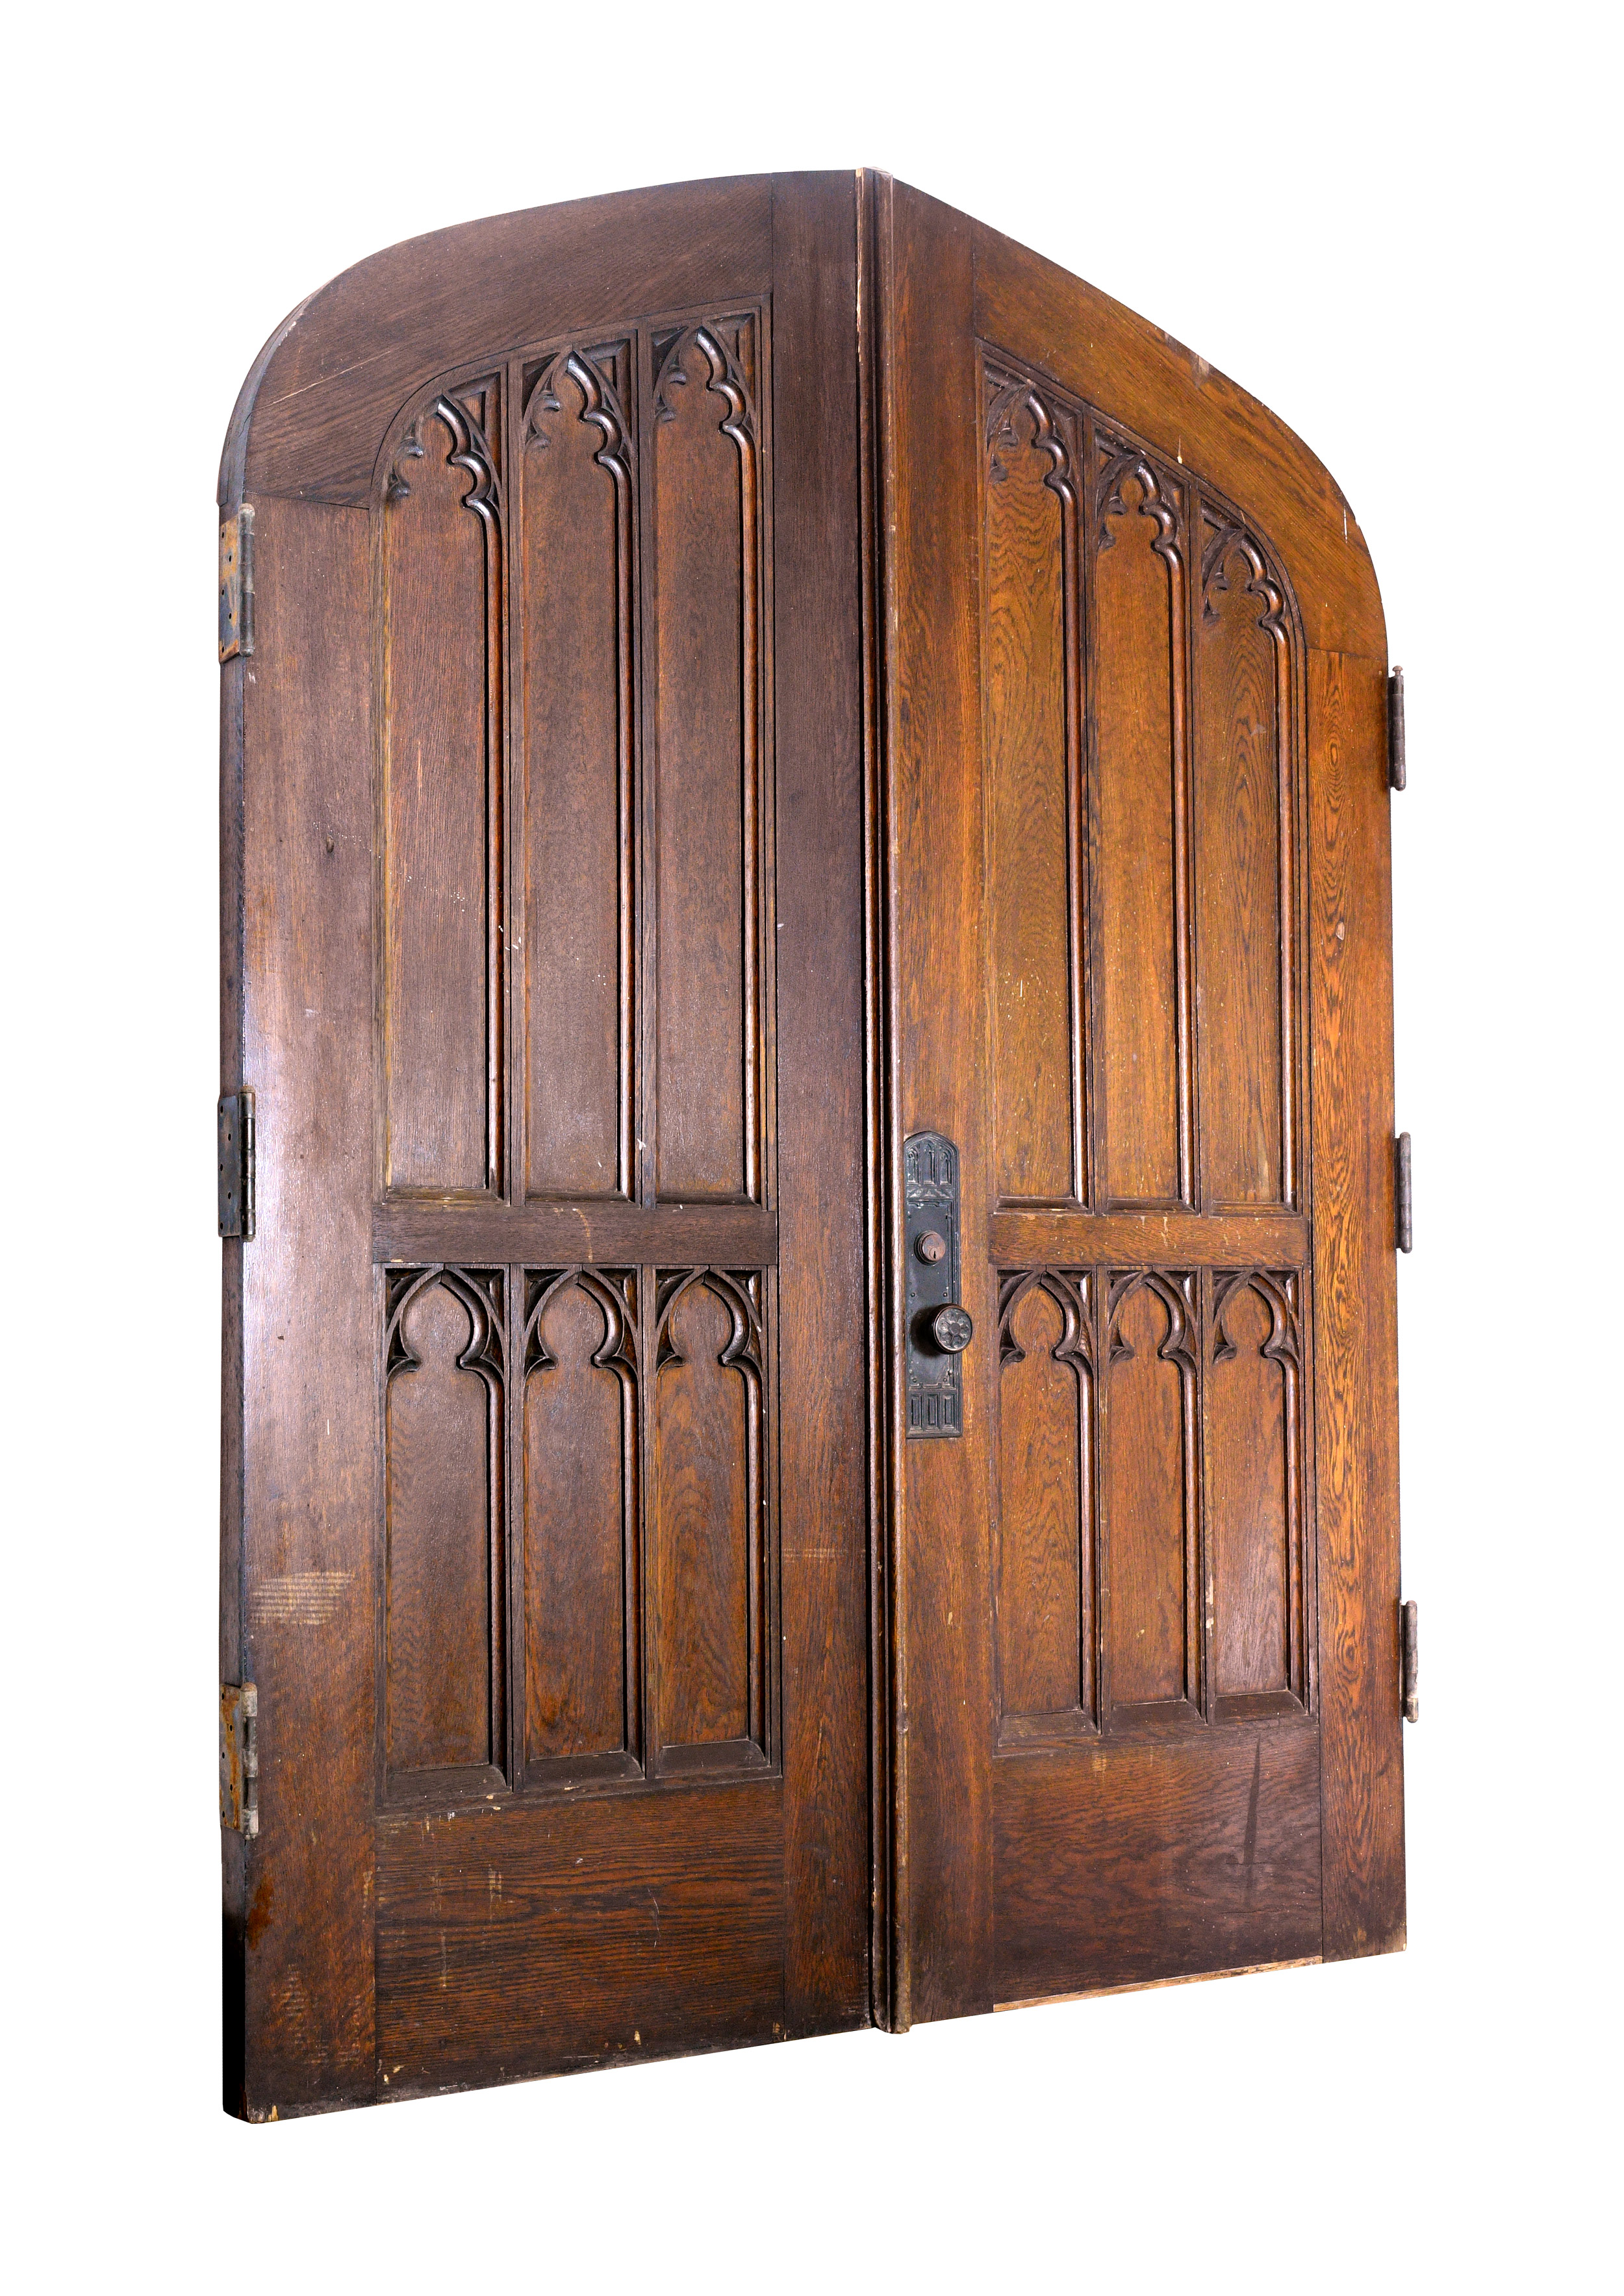 47845-gothic-double-arched-door-full-view-angle.jpg